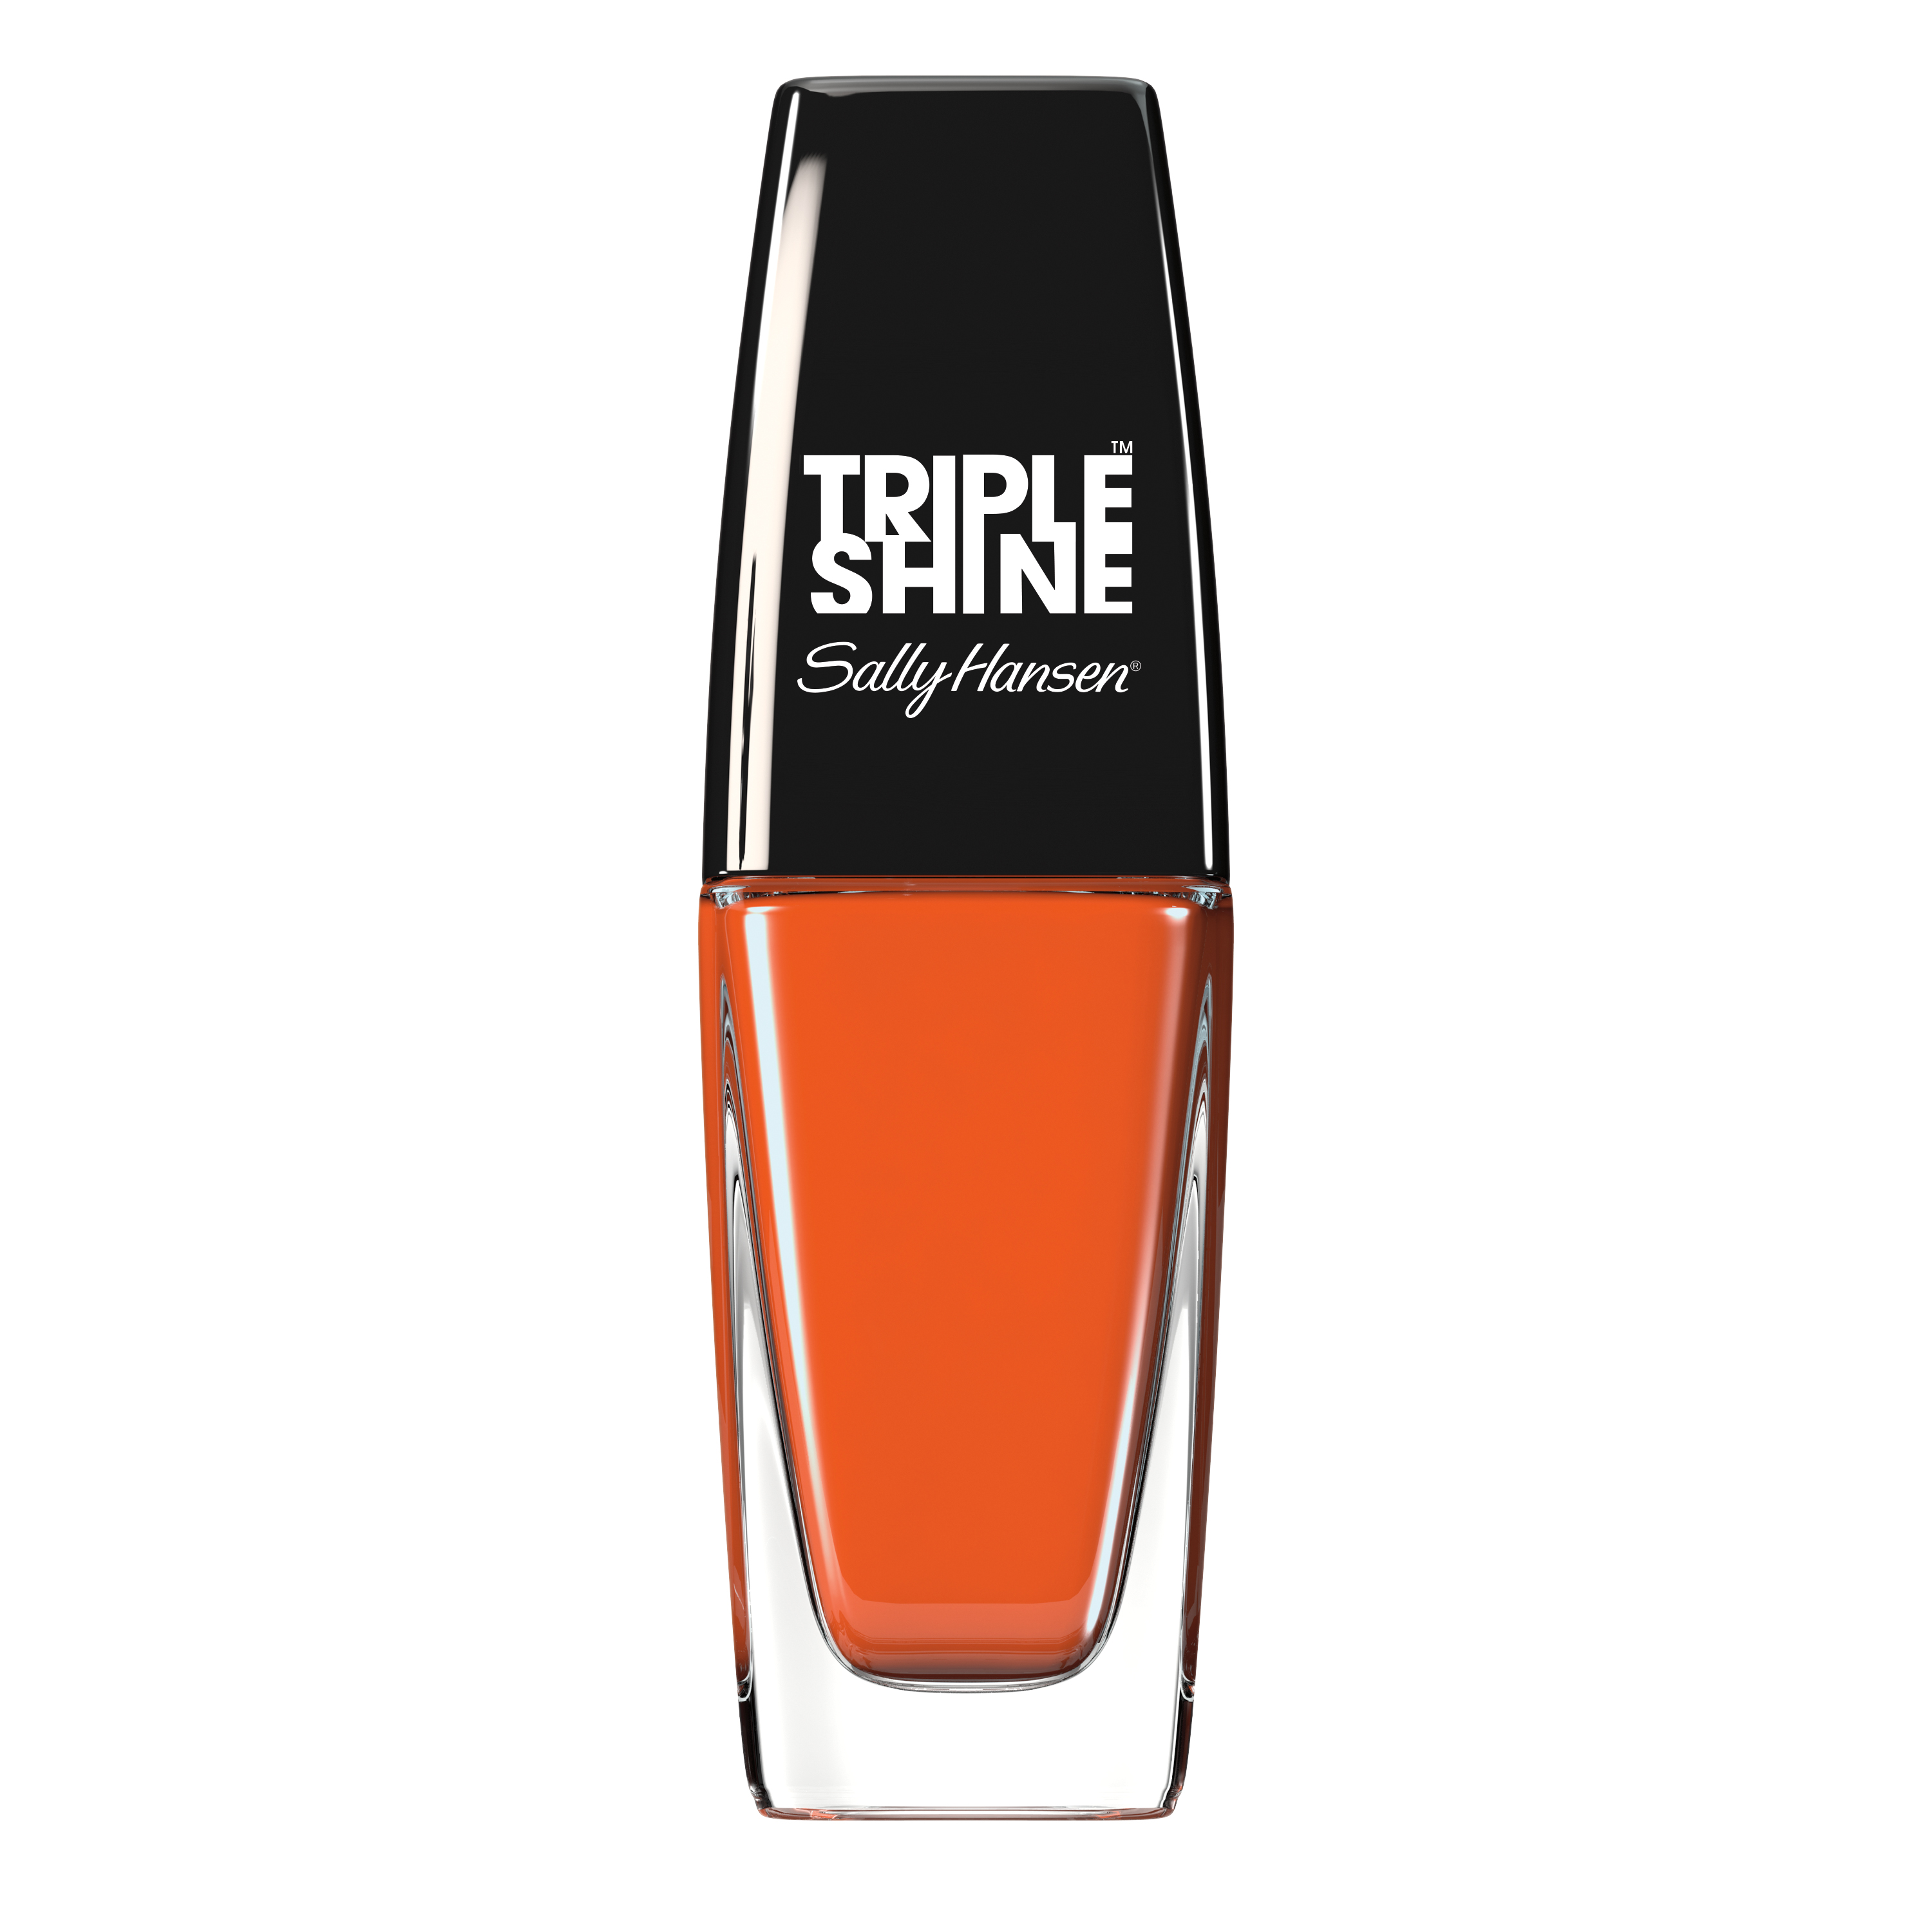 Shine On And On With New Sally Hansen Triple Shine Nail Color ...